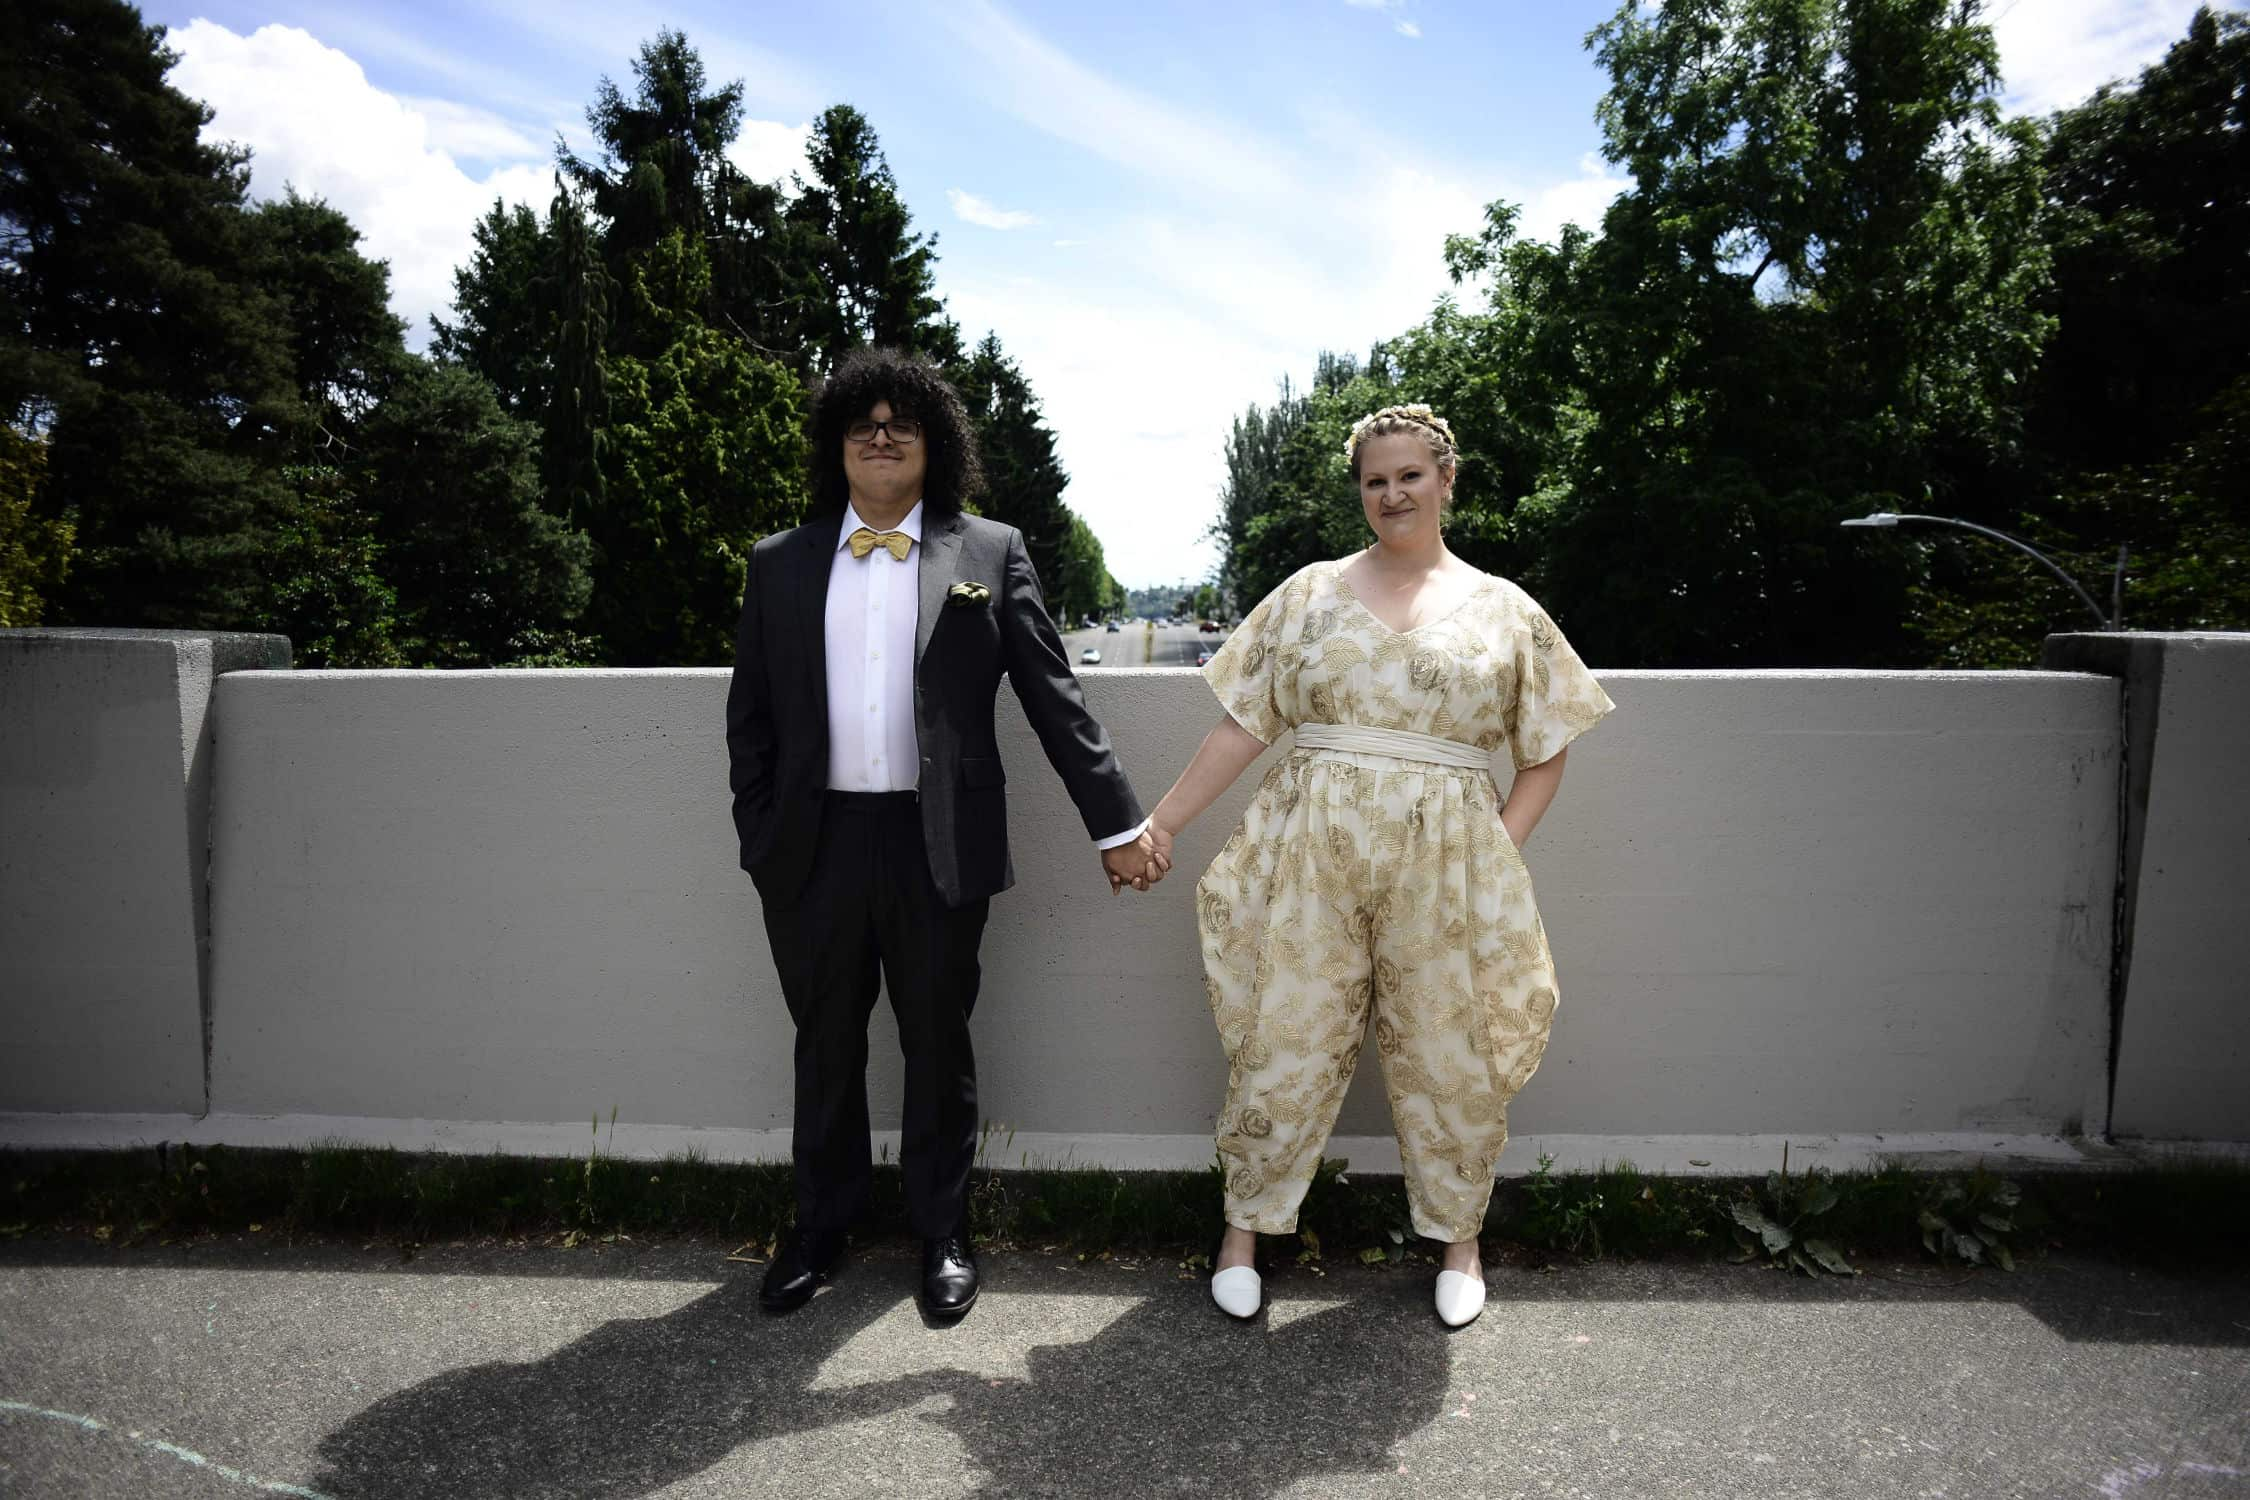 Roberto Molina and Bethany Denton on their wedding day. Photo by Zephyr Wadkins. 2018.